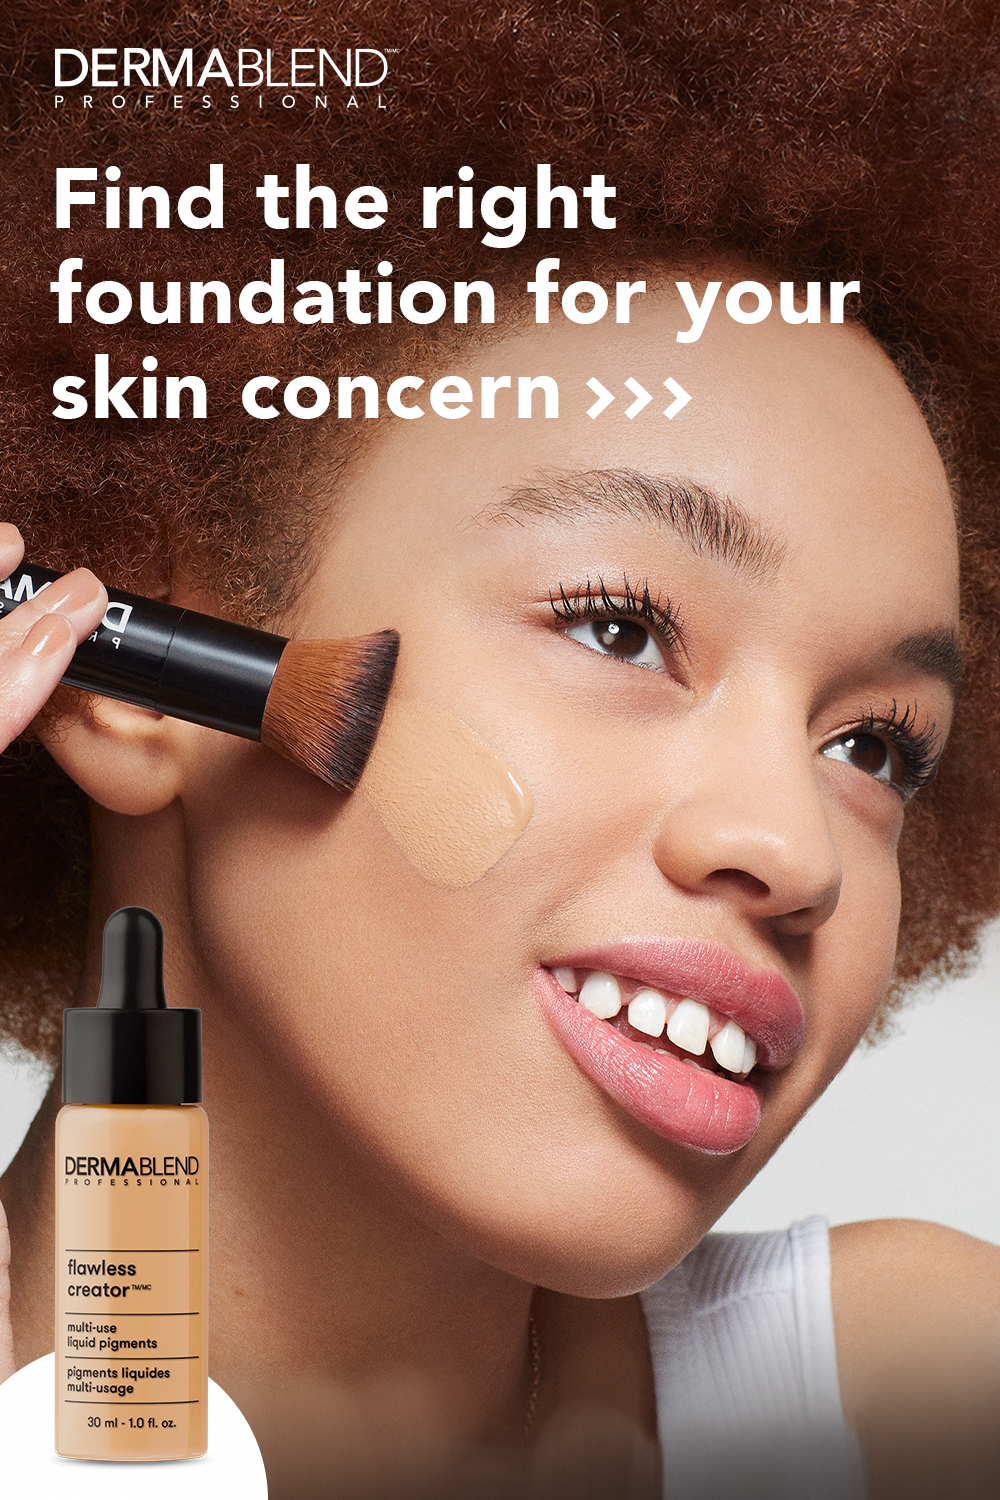 Find the right foundation for your specific skin type from